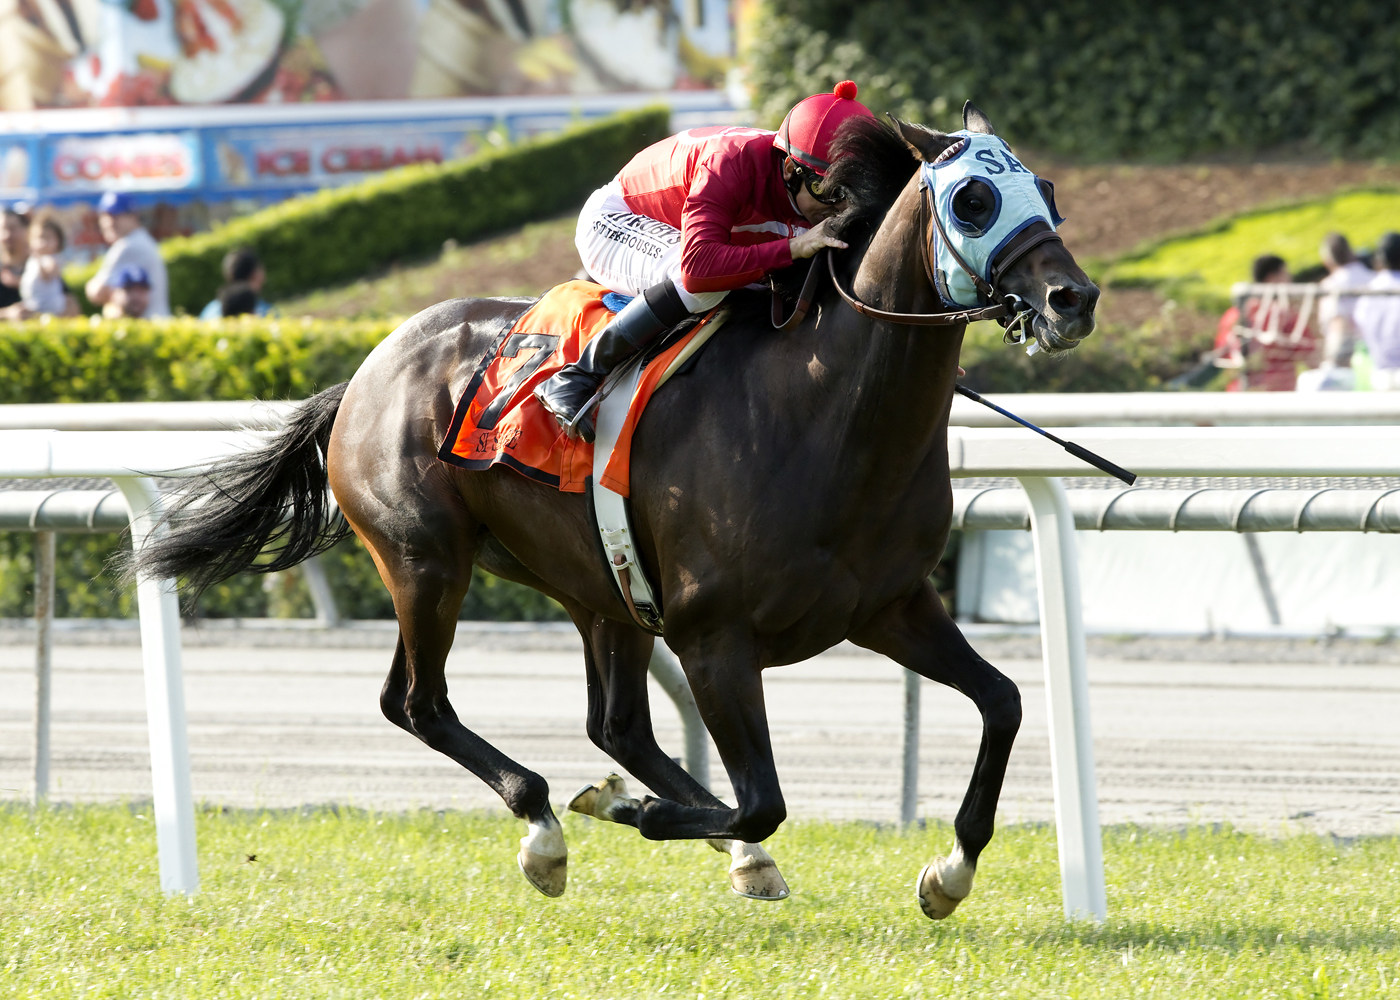 In a photo provided by Benoit Photo, Si Sage and jockey Mike Smith win the Grade II, $200,000 Charles Whittingham Stakes horse race, Sunday, May 29, 2016, at Santa Anita in Arcadia, Calif. (Benoit Photo via AP)